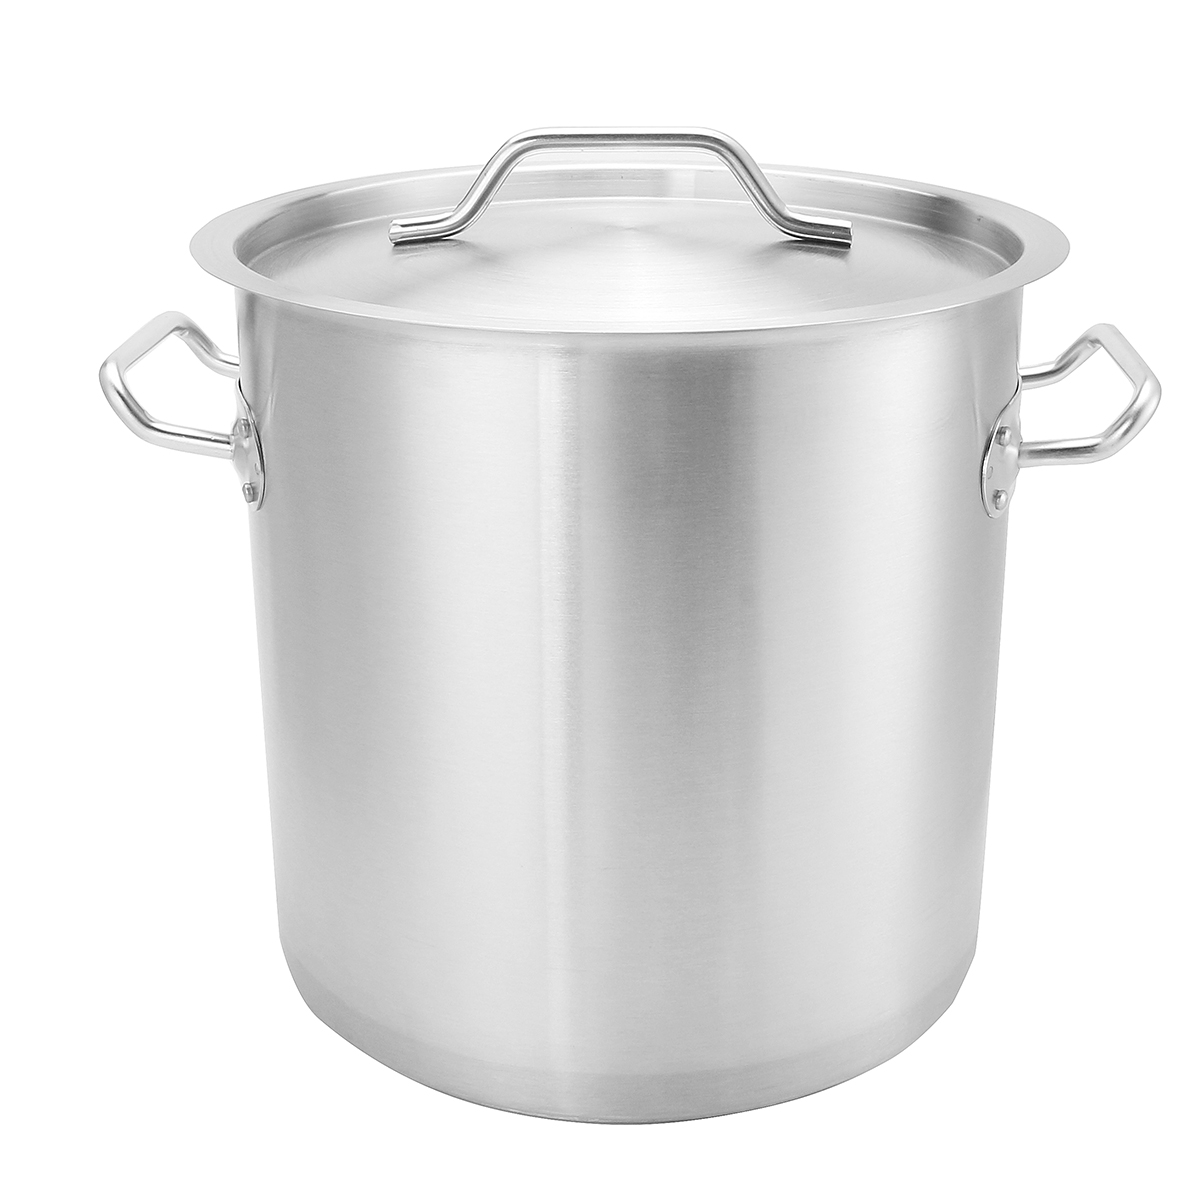 Commercial Thicken Stainless Steel Stock Pot Home Kitchen Cookware 20/25/28/30CM